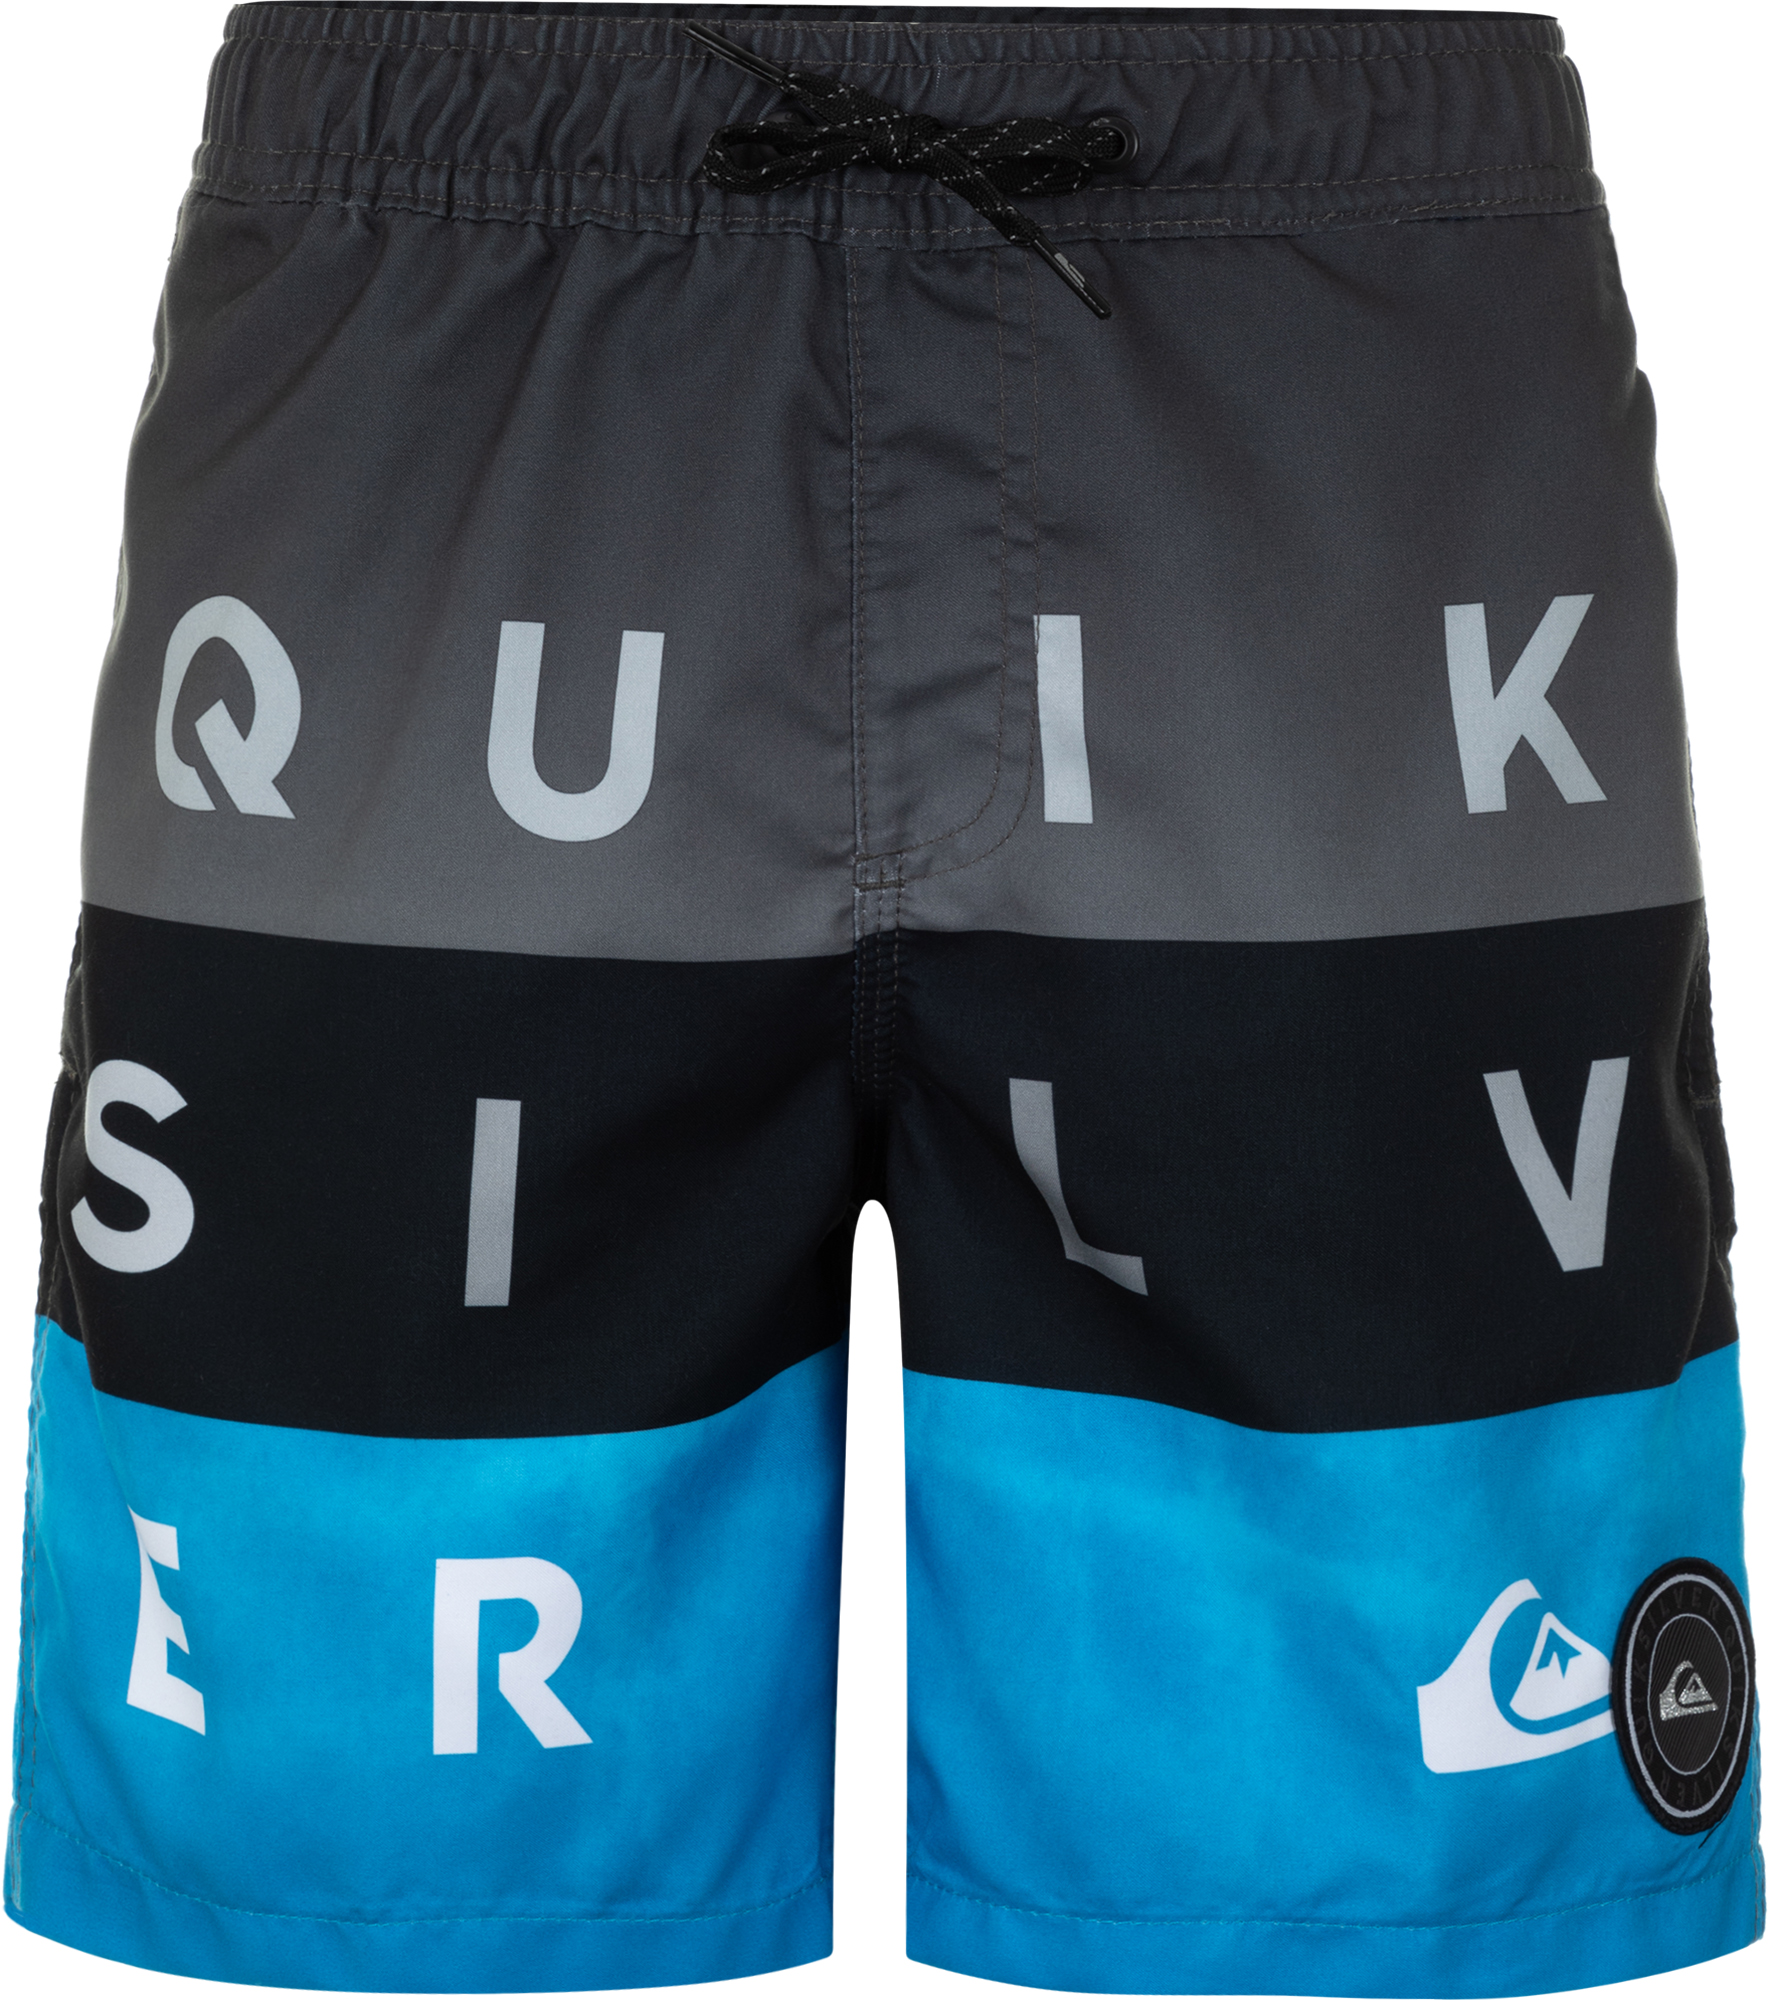 Quiksilver Шорты для мальчиков Quiksilver Word Block Volle Youth 15, размер 164-170 quiksilver штаны прямые детские quiksilver thick wood baby i pant blue salted